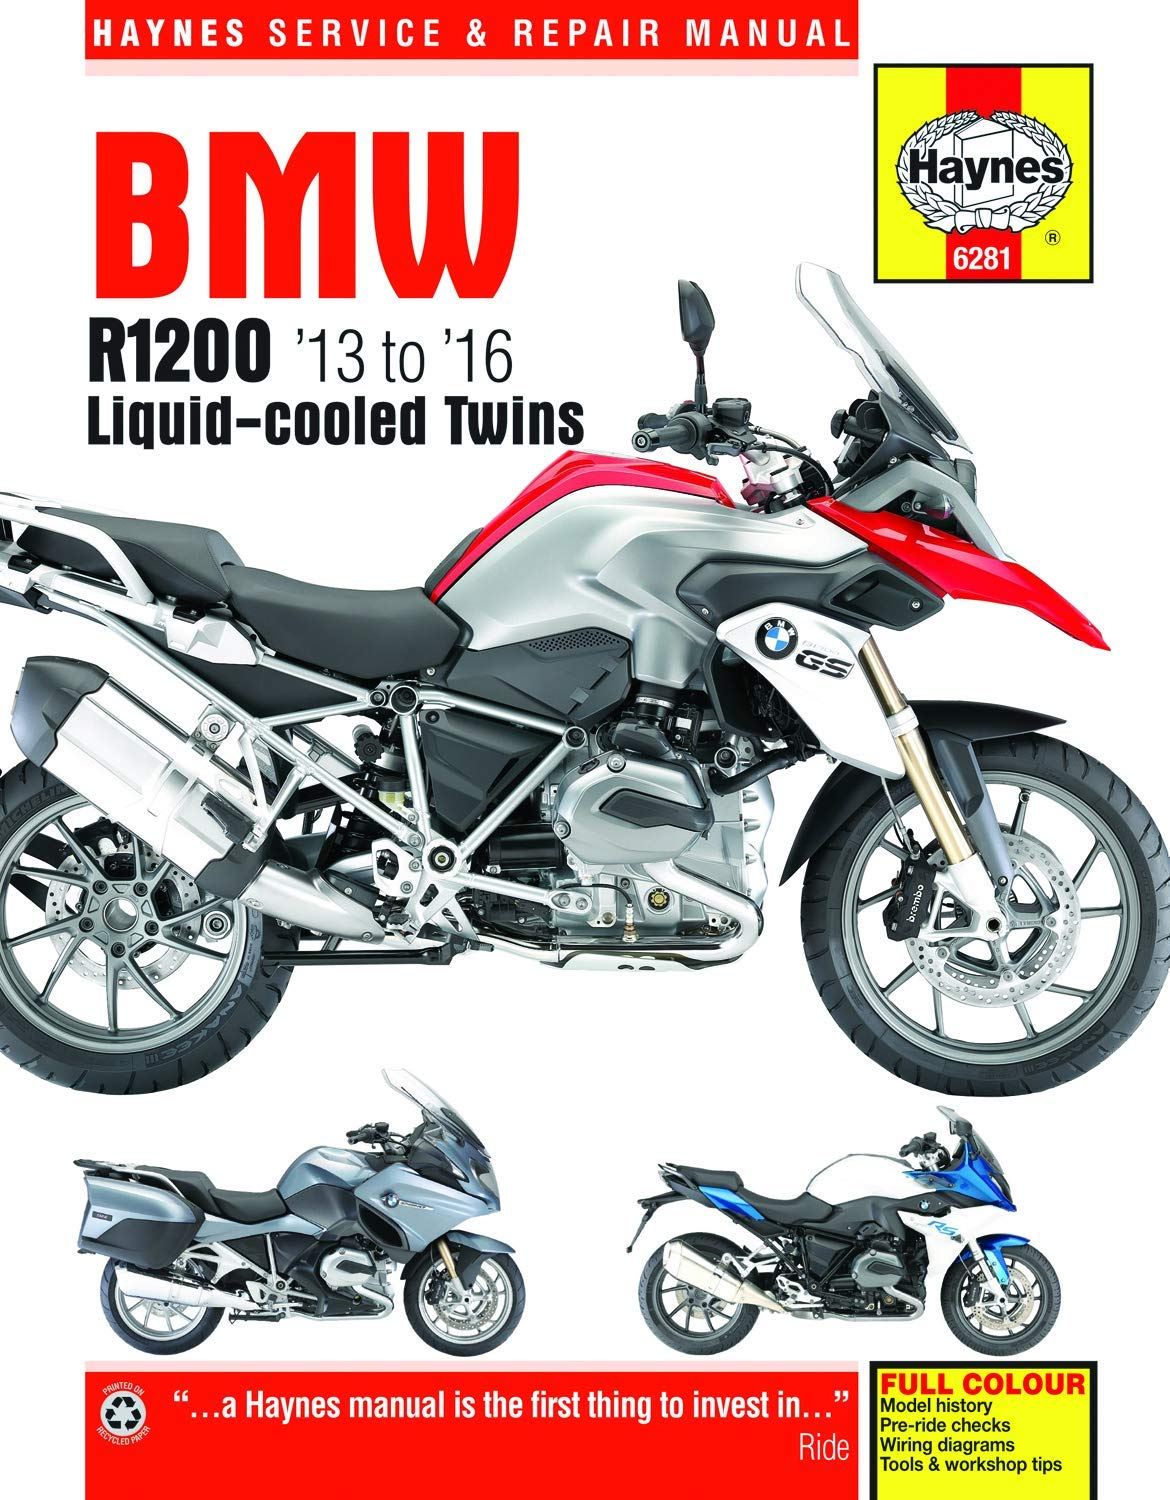 BMW R1200 Liquid-cooled Twins (13-16) Haynes Repair Manual (Haynes on